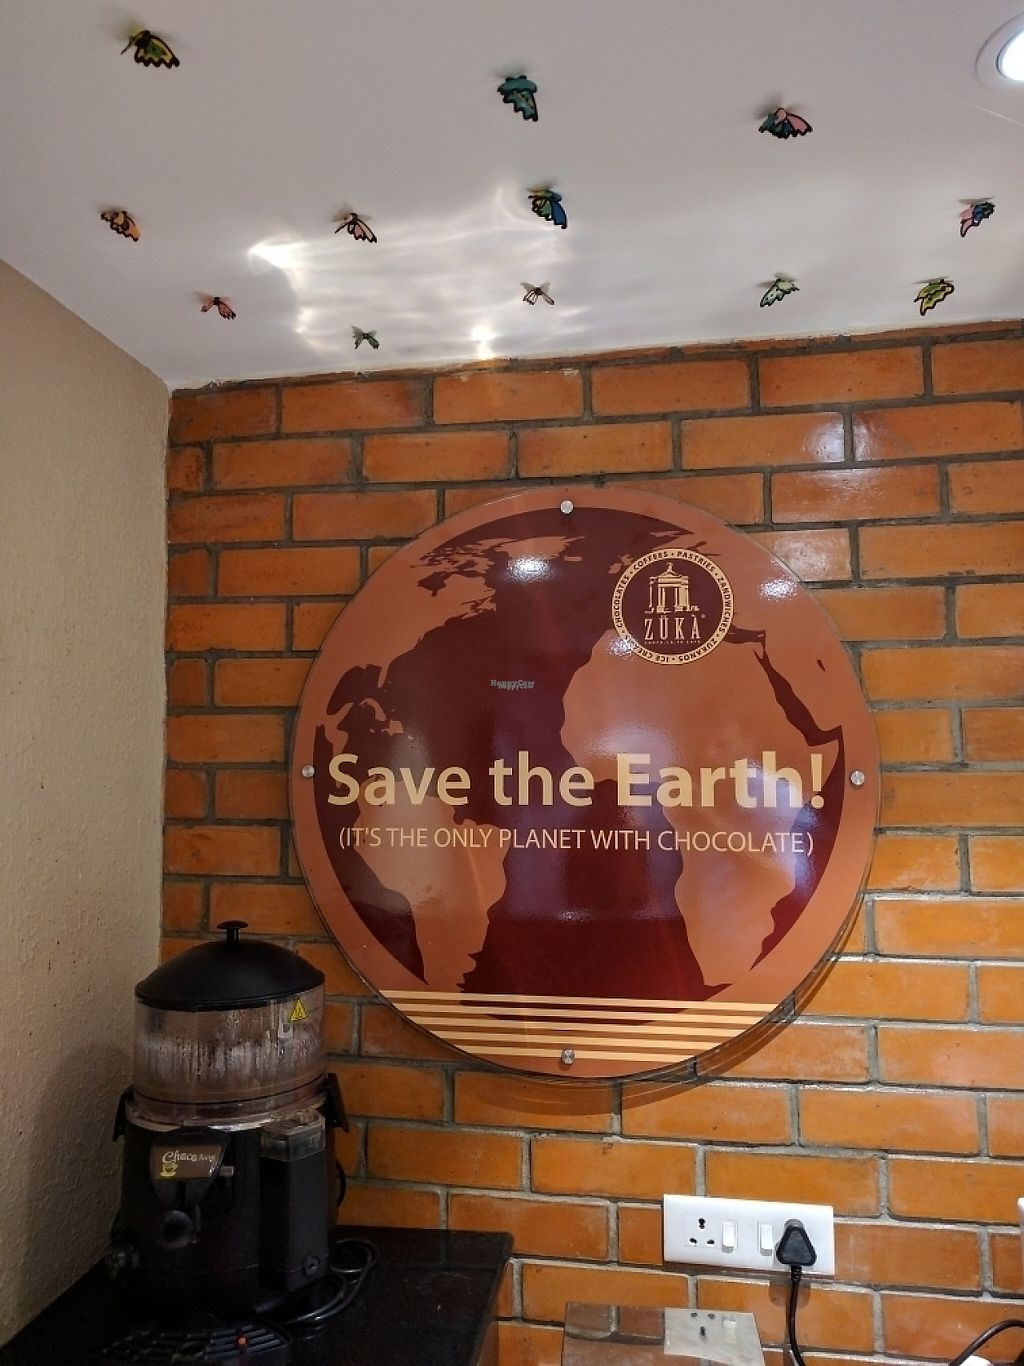 """Photo of Zuka Cake and Dessert Shop  by <a href=""""/members/profile/Floyd205"""">Floyd205</a> <br/>yeah. Save the earth!!! <br/> January 11, 2017  - <a href='/contact/abuse/image/85342/210741'>Report</a>"""